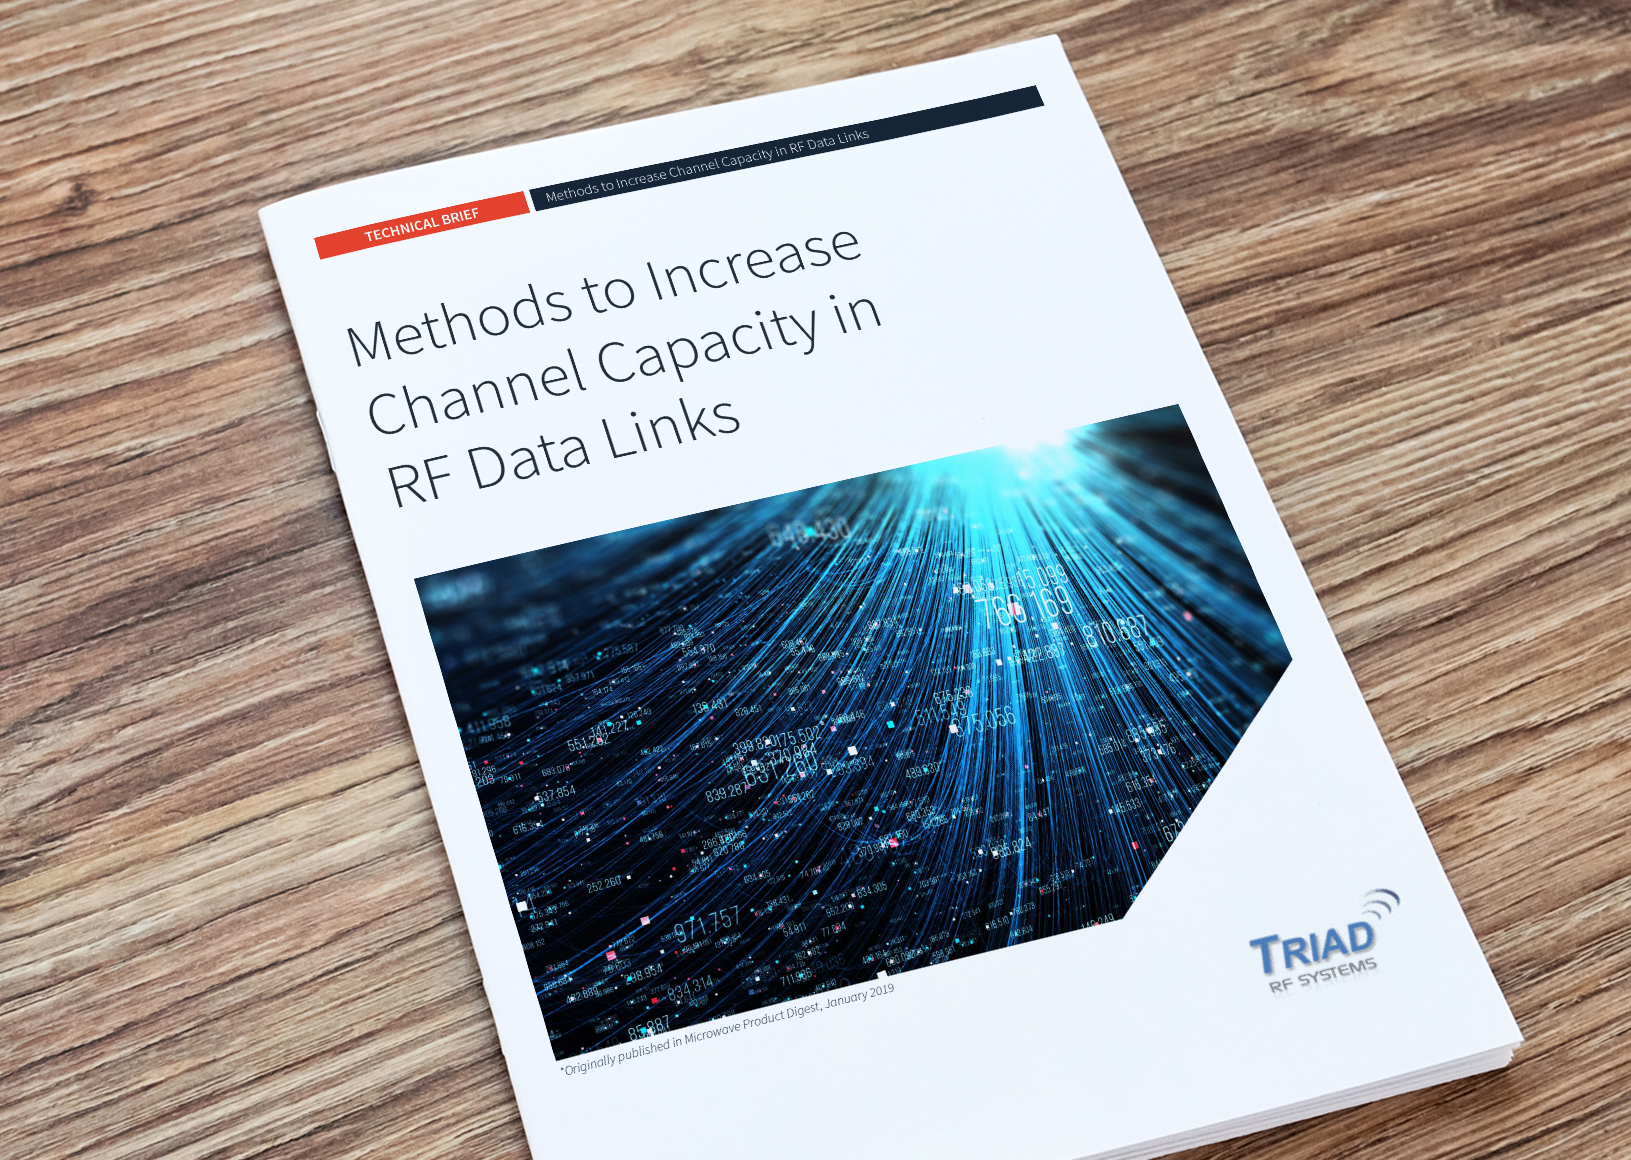 Methods to Increase Channel Capacity in RF Data Links